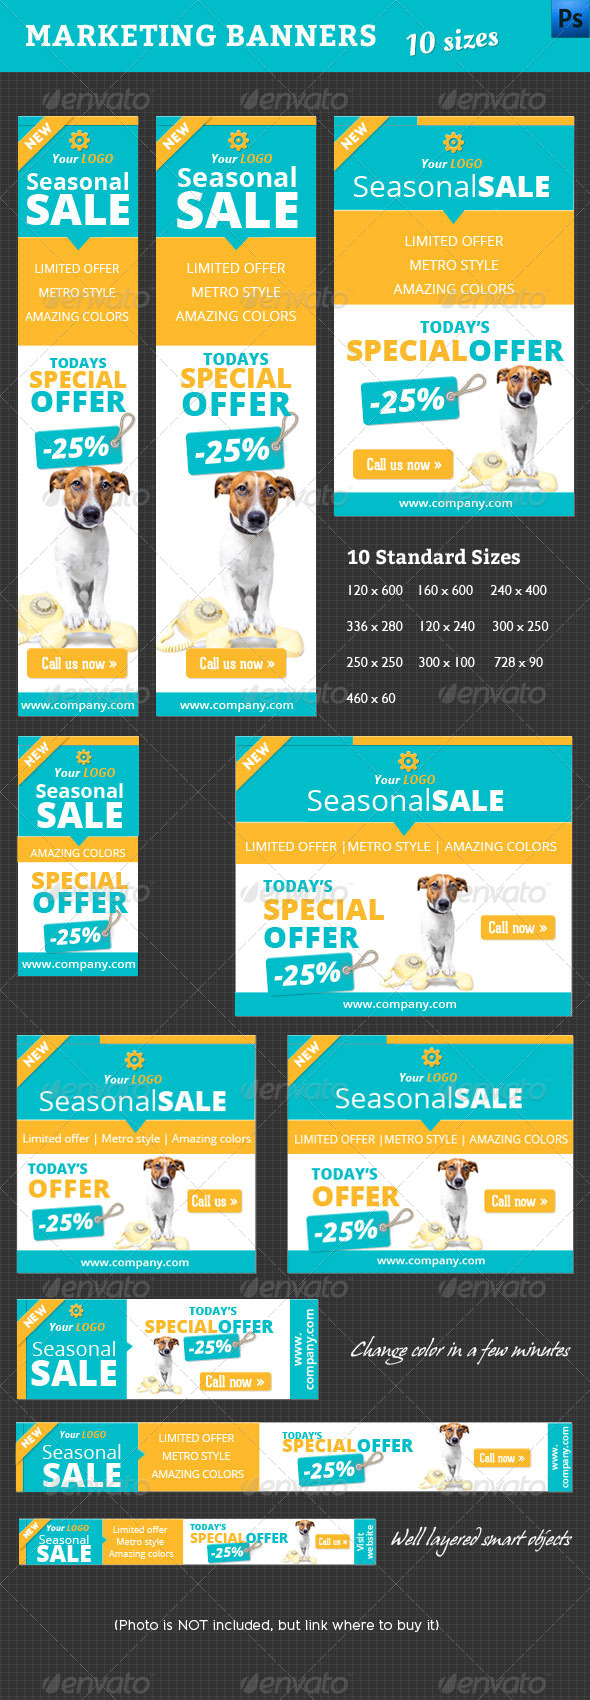 GraphicRiver Marketing Banner 4583387